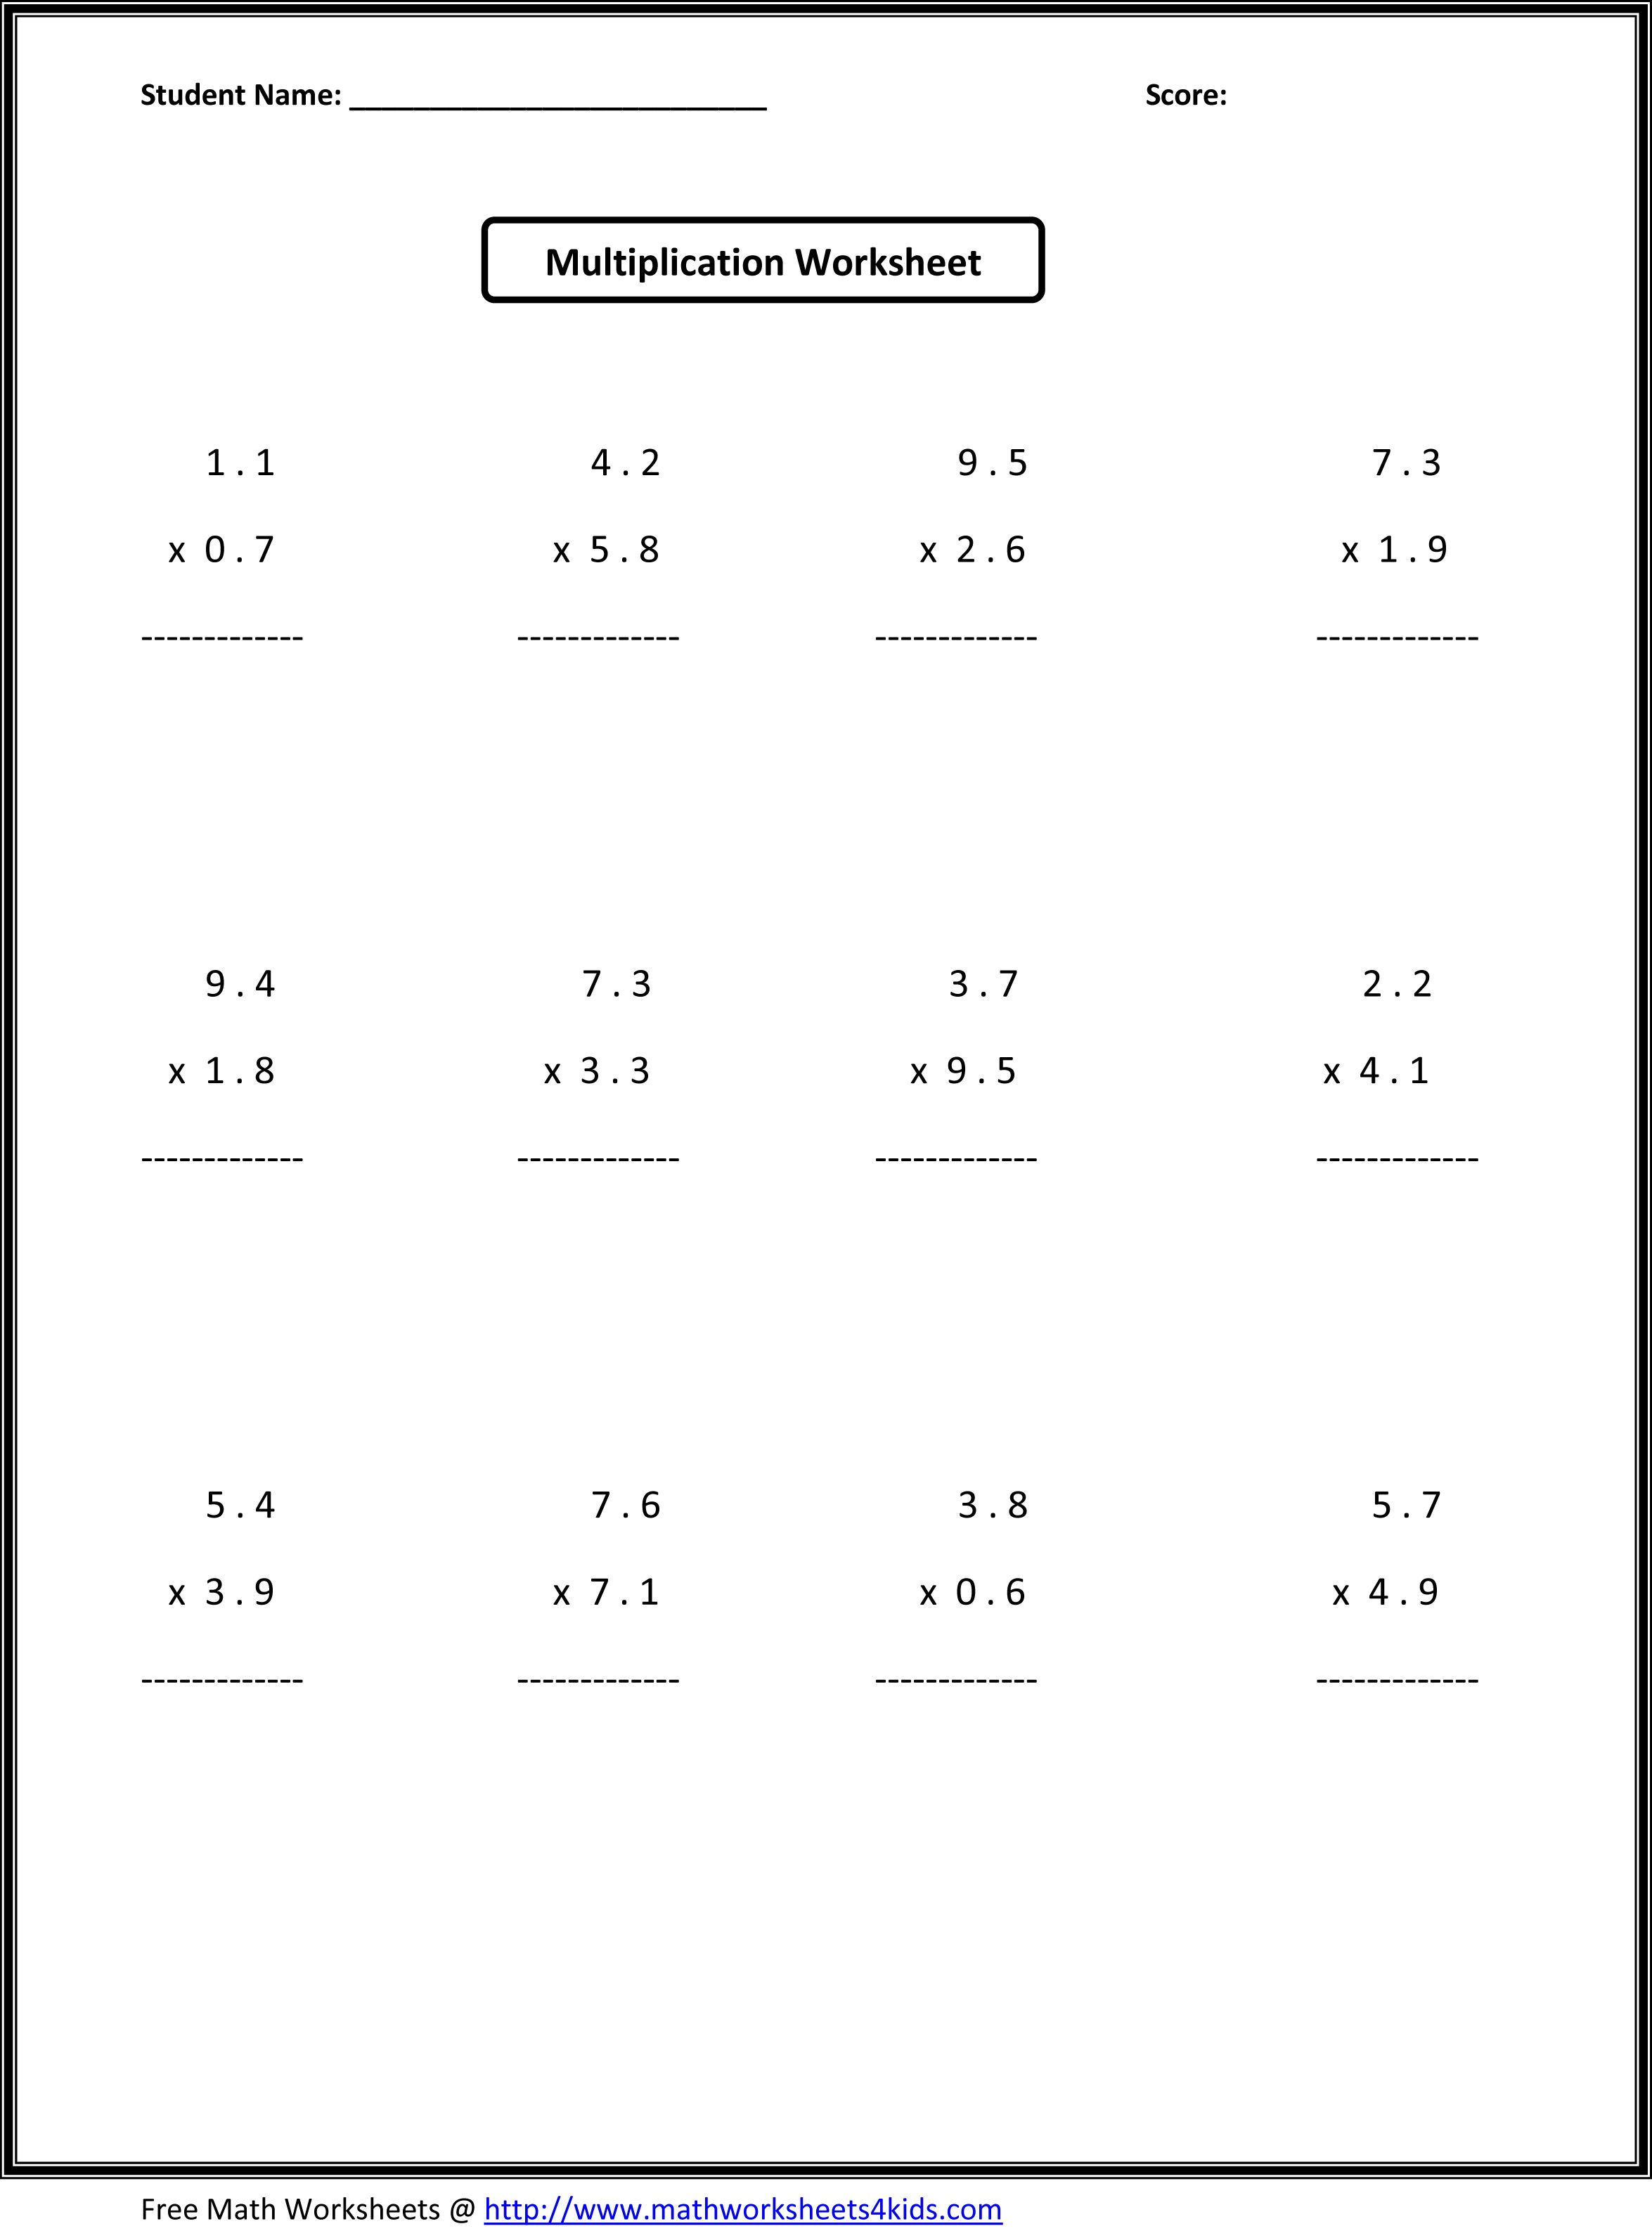 math worksheet : 1000 images about math on pinterest  7th grade math worksheets  : Sixth Grade Math Worksheets Pdf